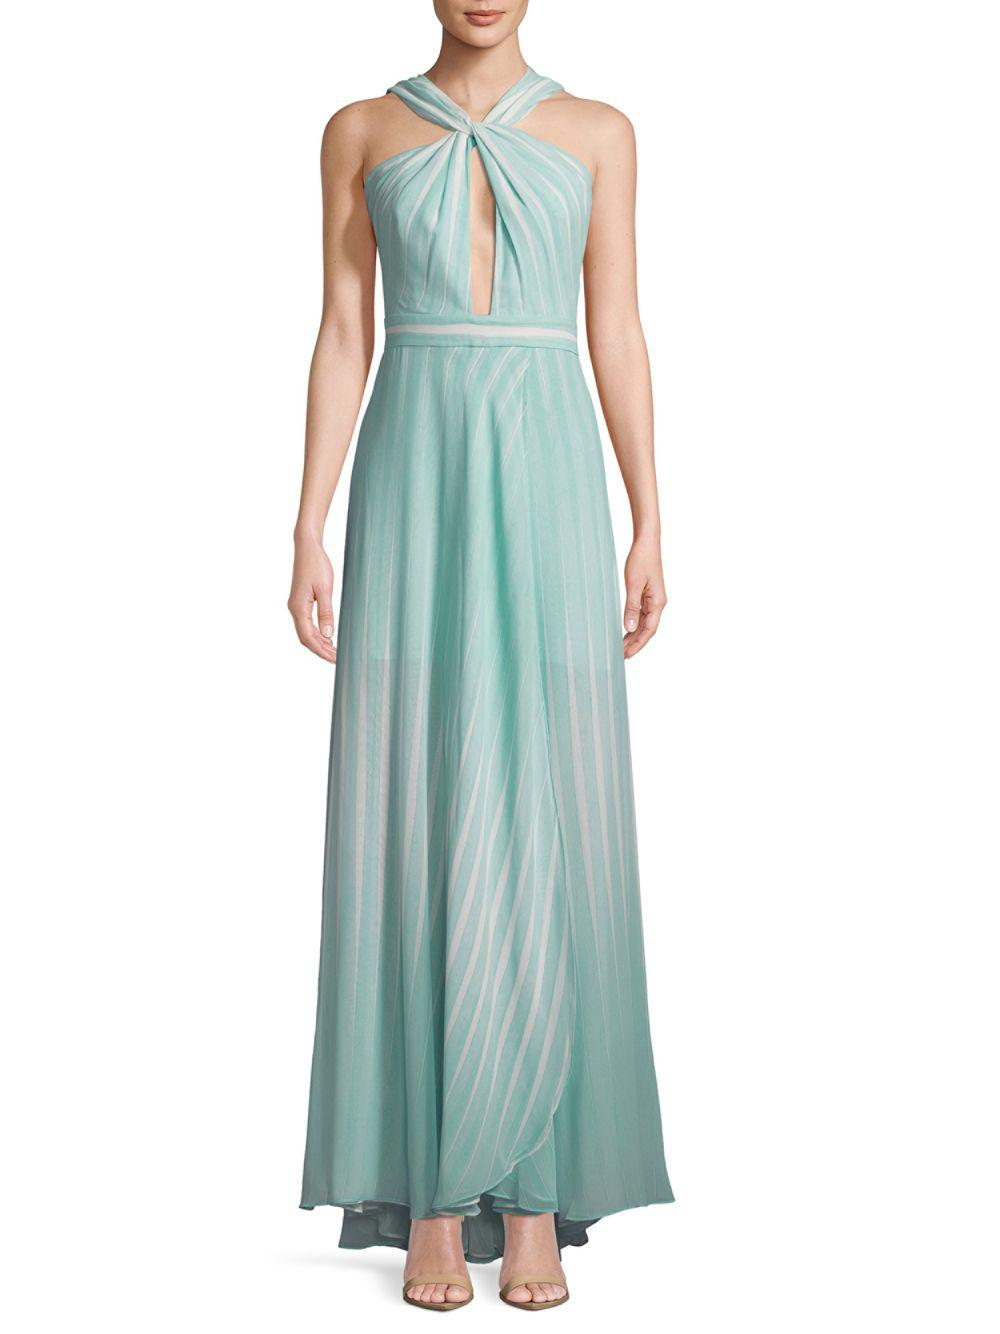 Lyst - Halston Heritage Striped Twist-front Floor-length Gown in Green